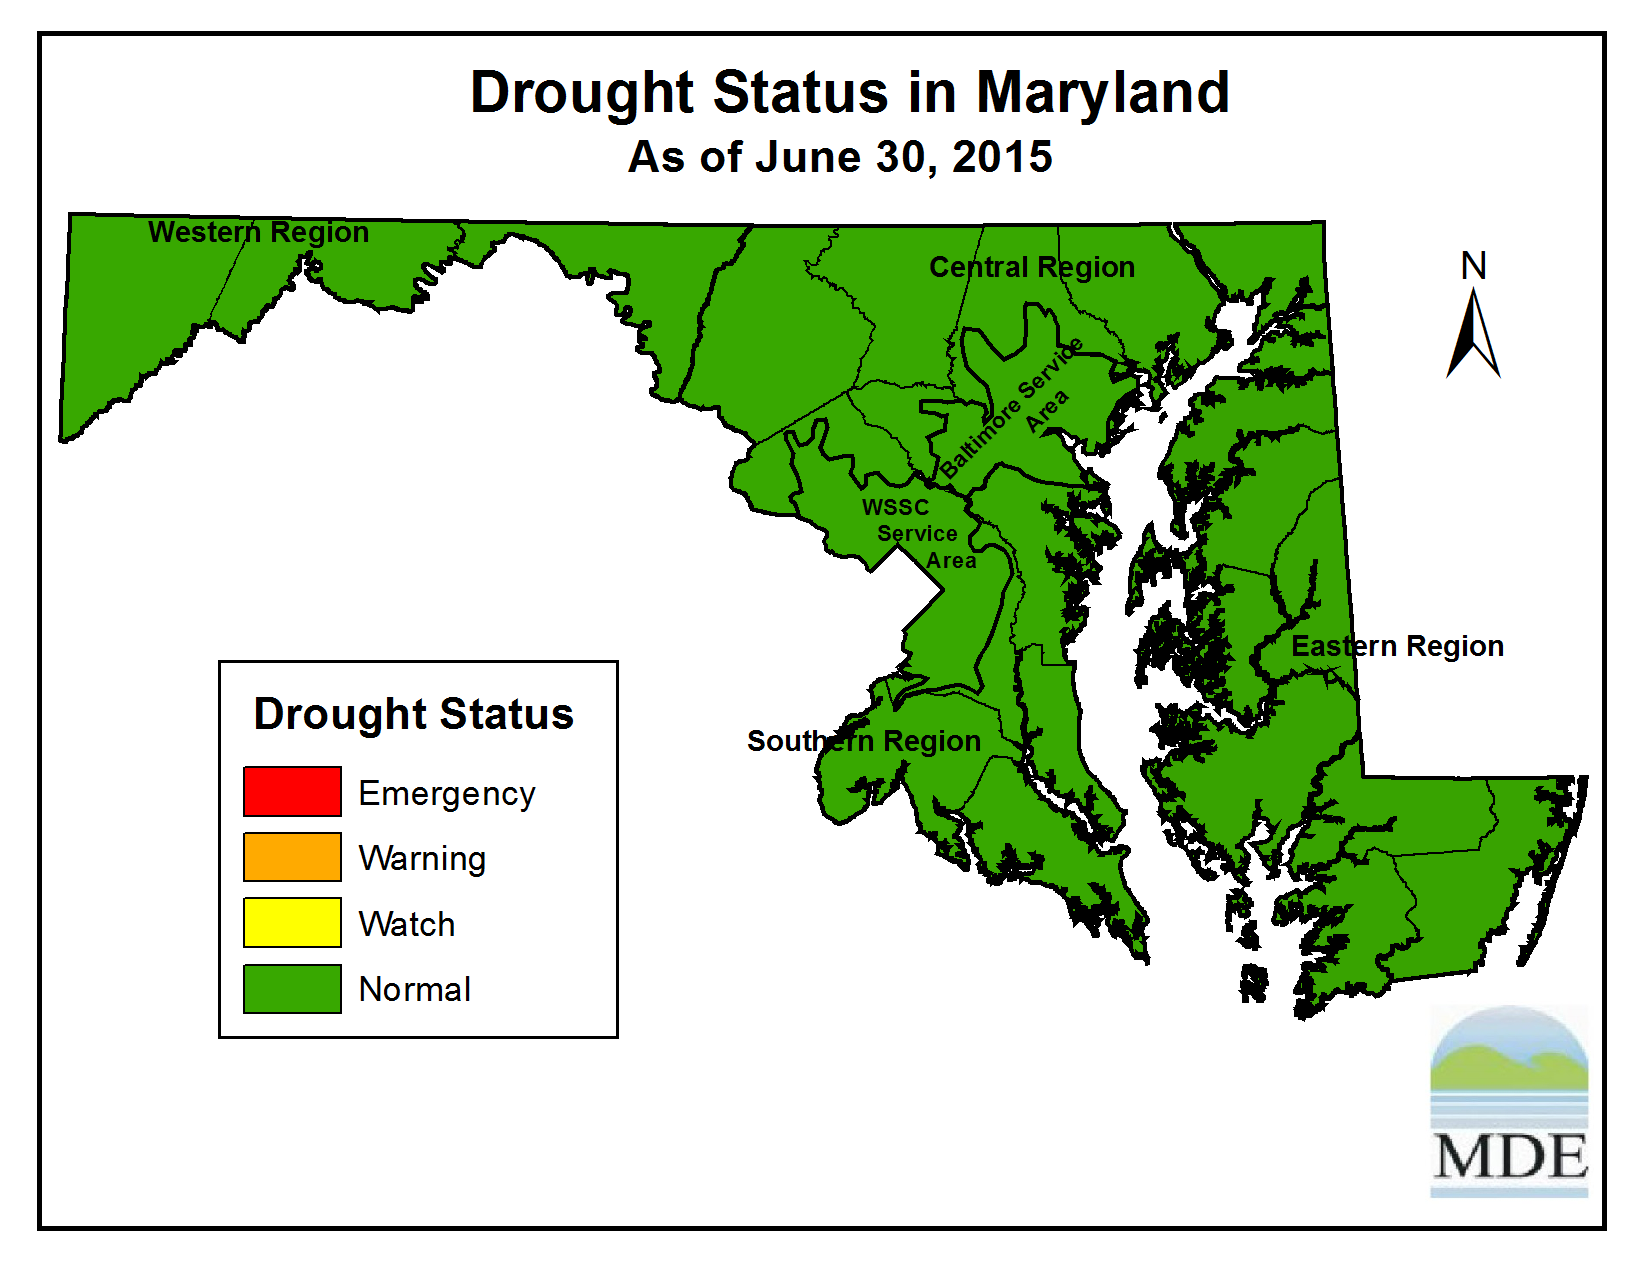 Drought Status as of June 30, 2015